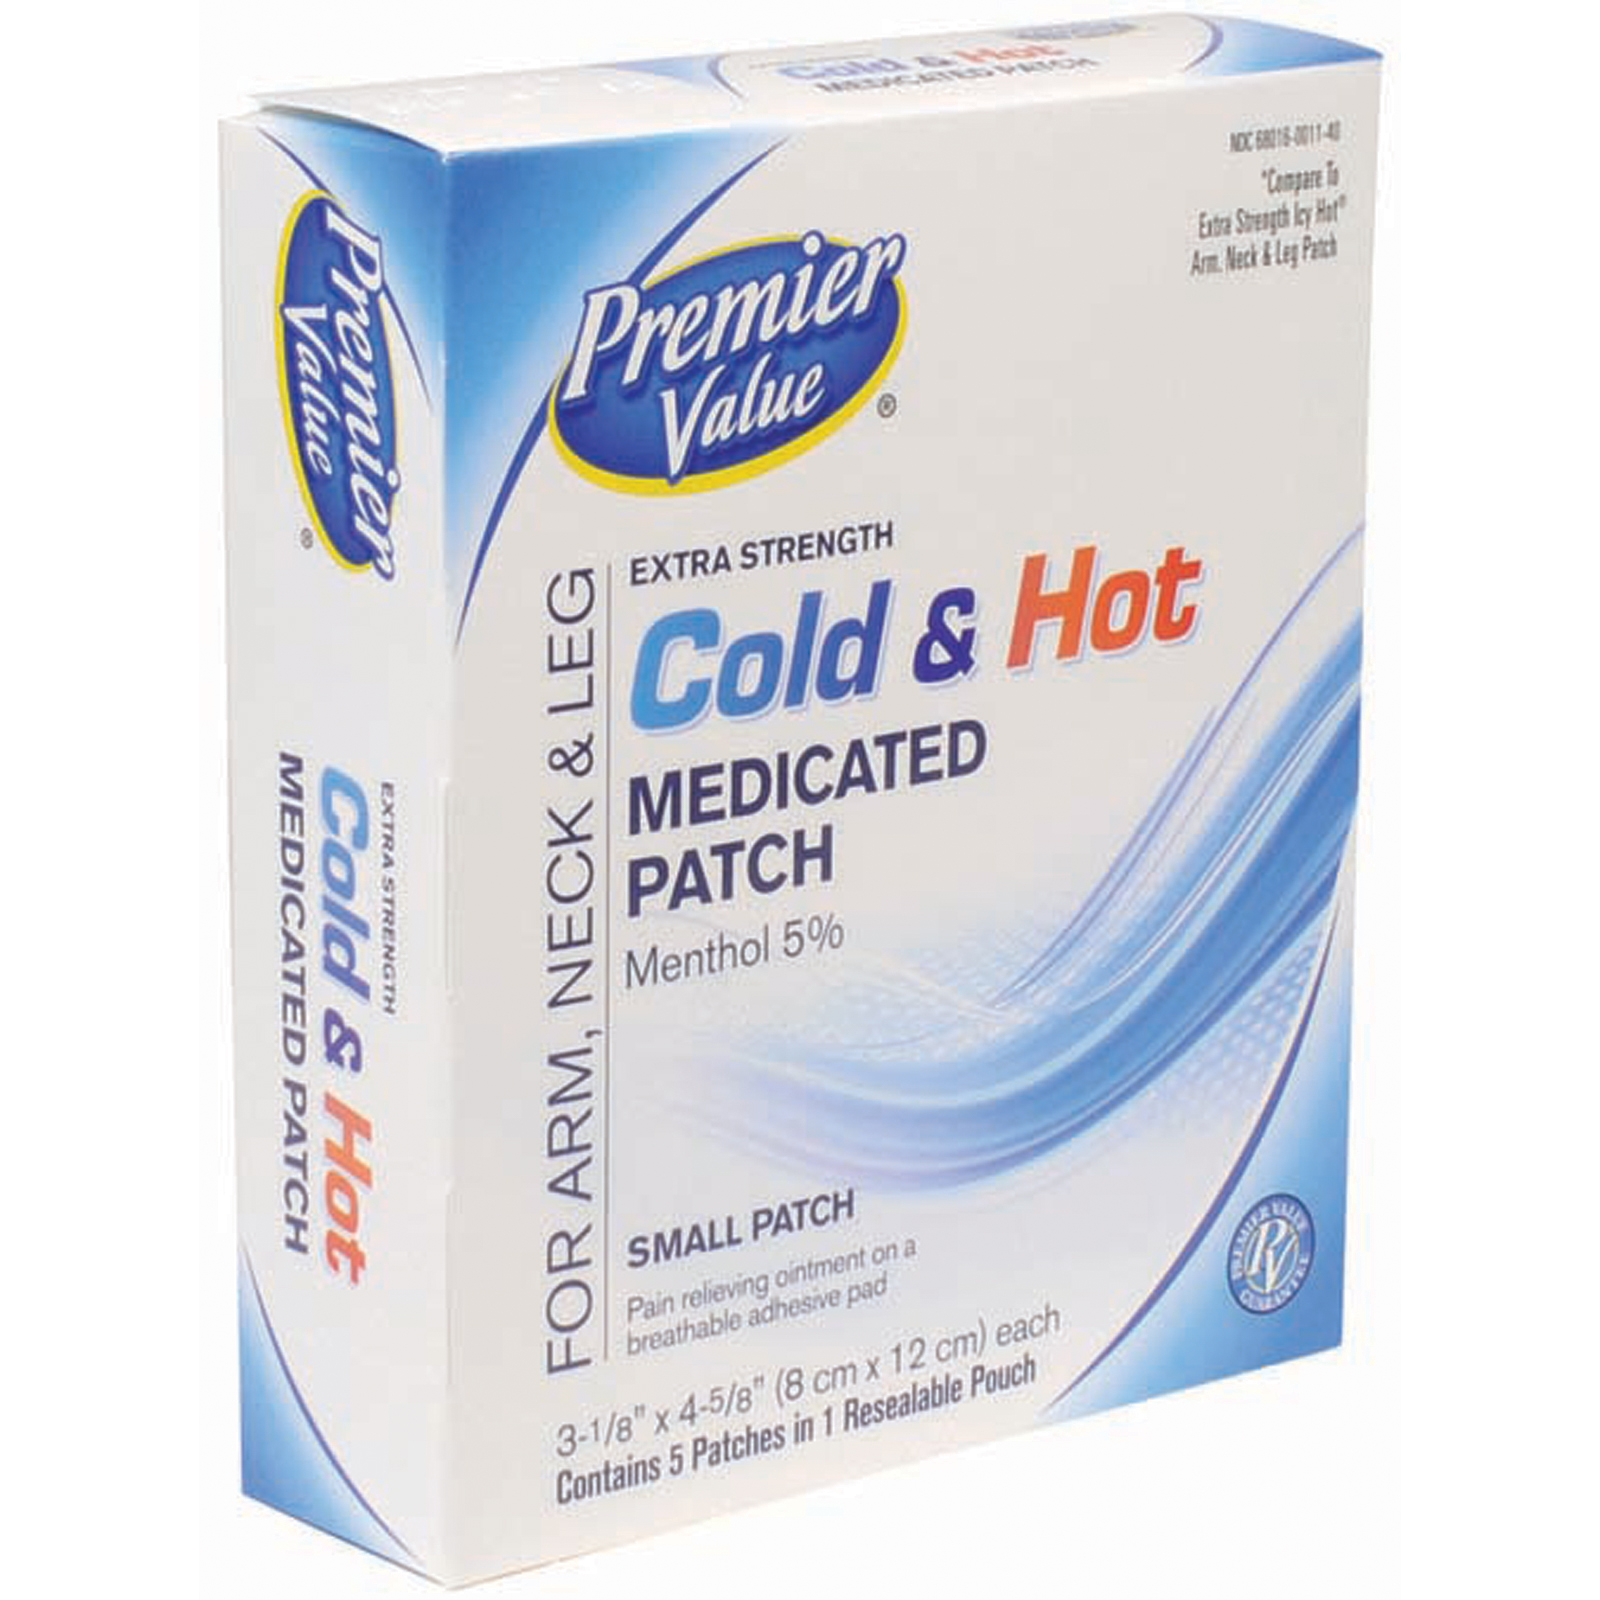 Premier Value Cold & Hot Patches - 5 ct